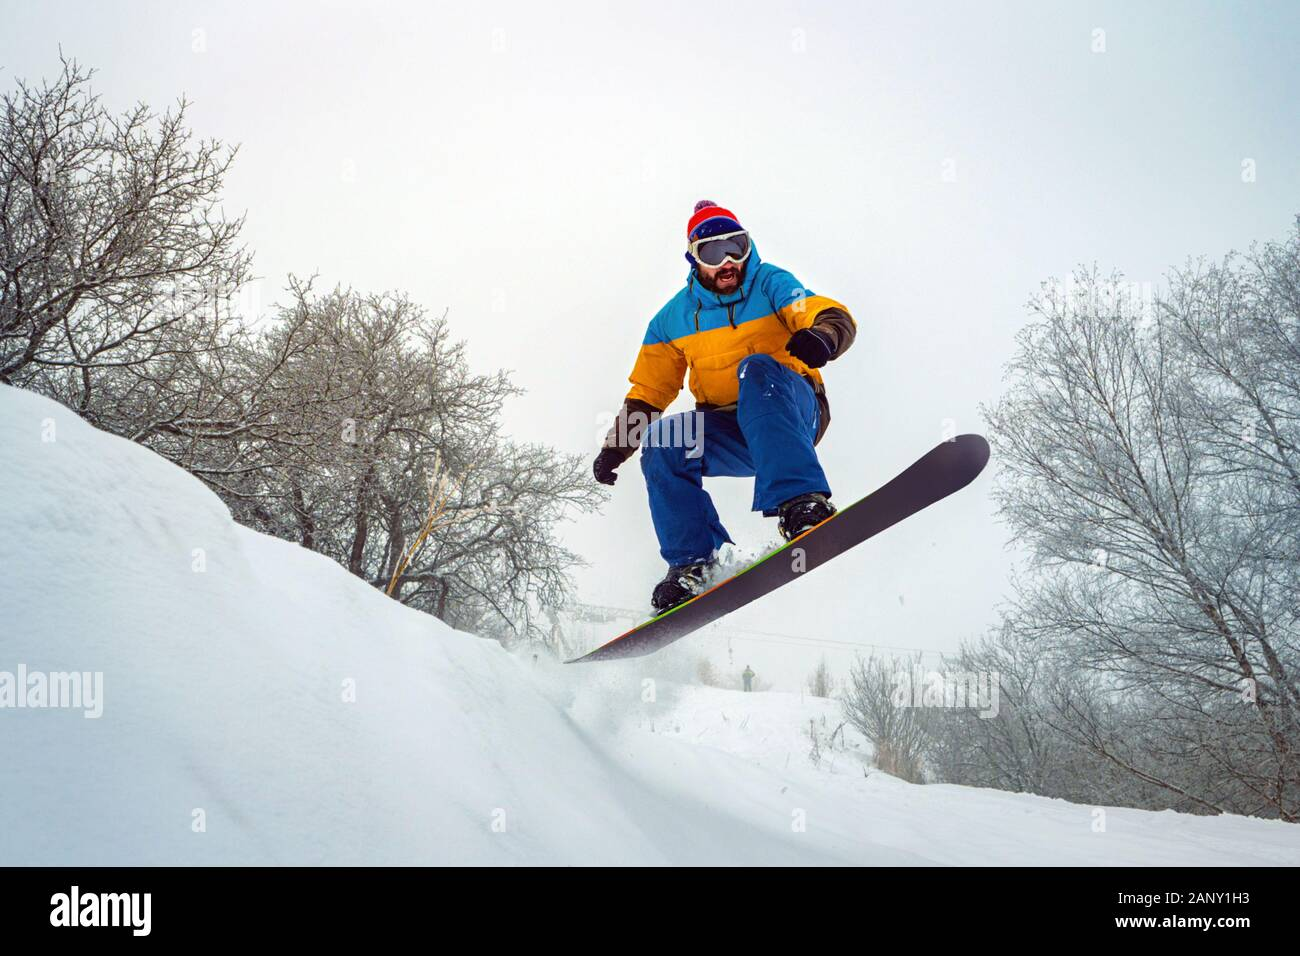 The guy is snowboarding. He jumps out of a snowy hill. Snowboarding in the fresh snow. Winter fun Stock Photo